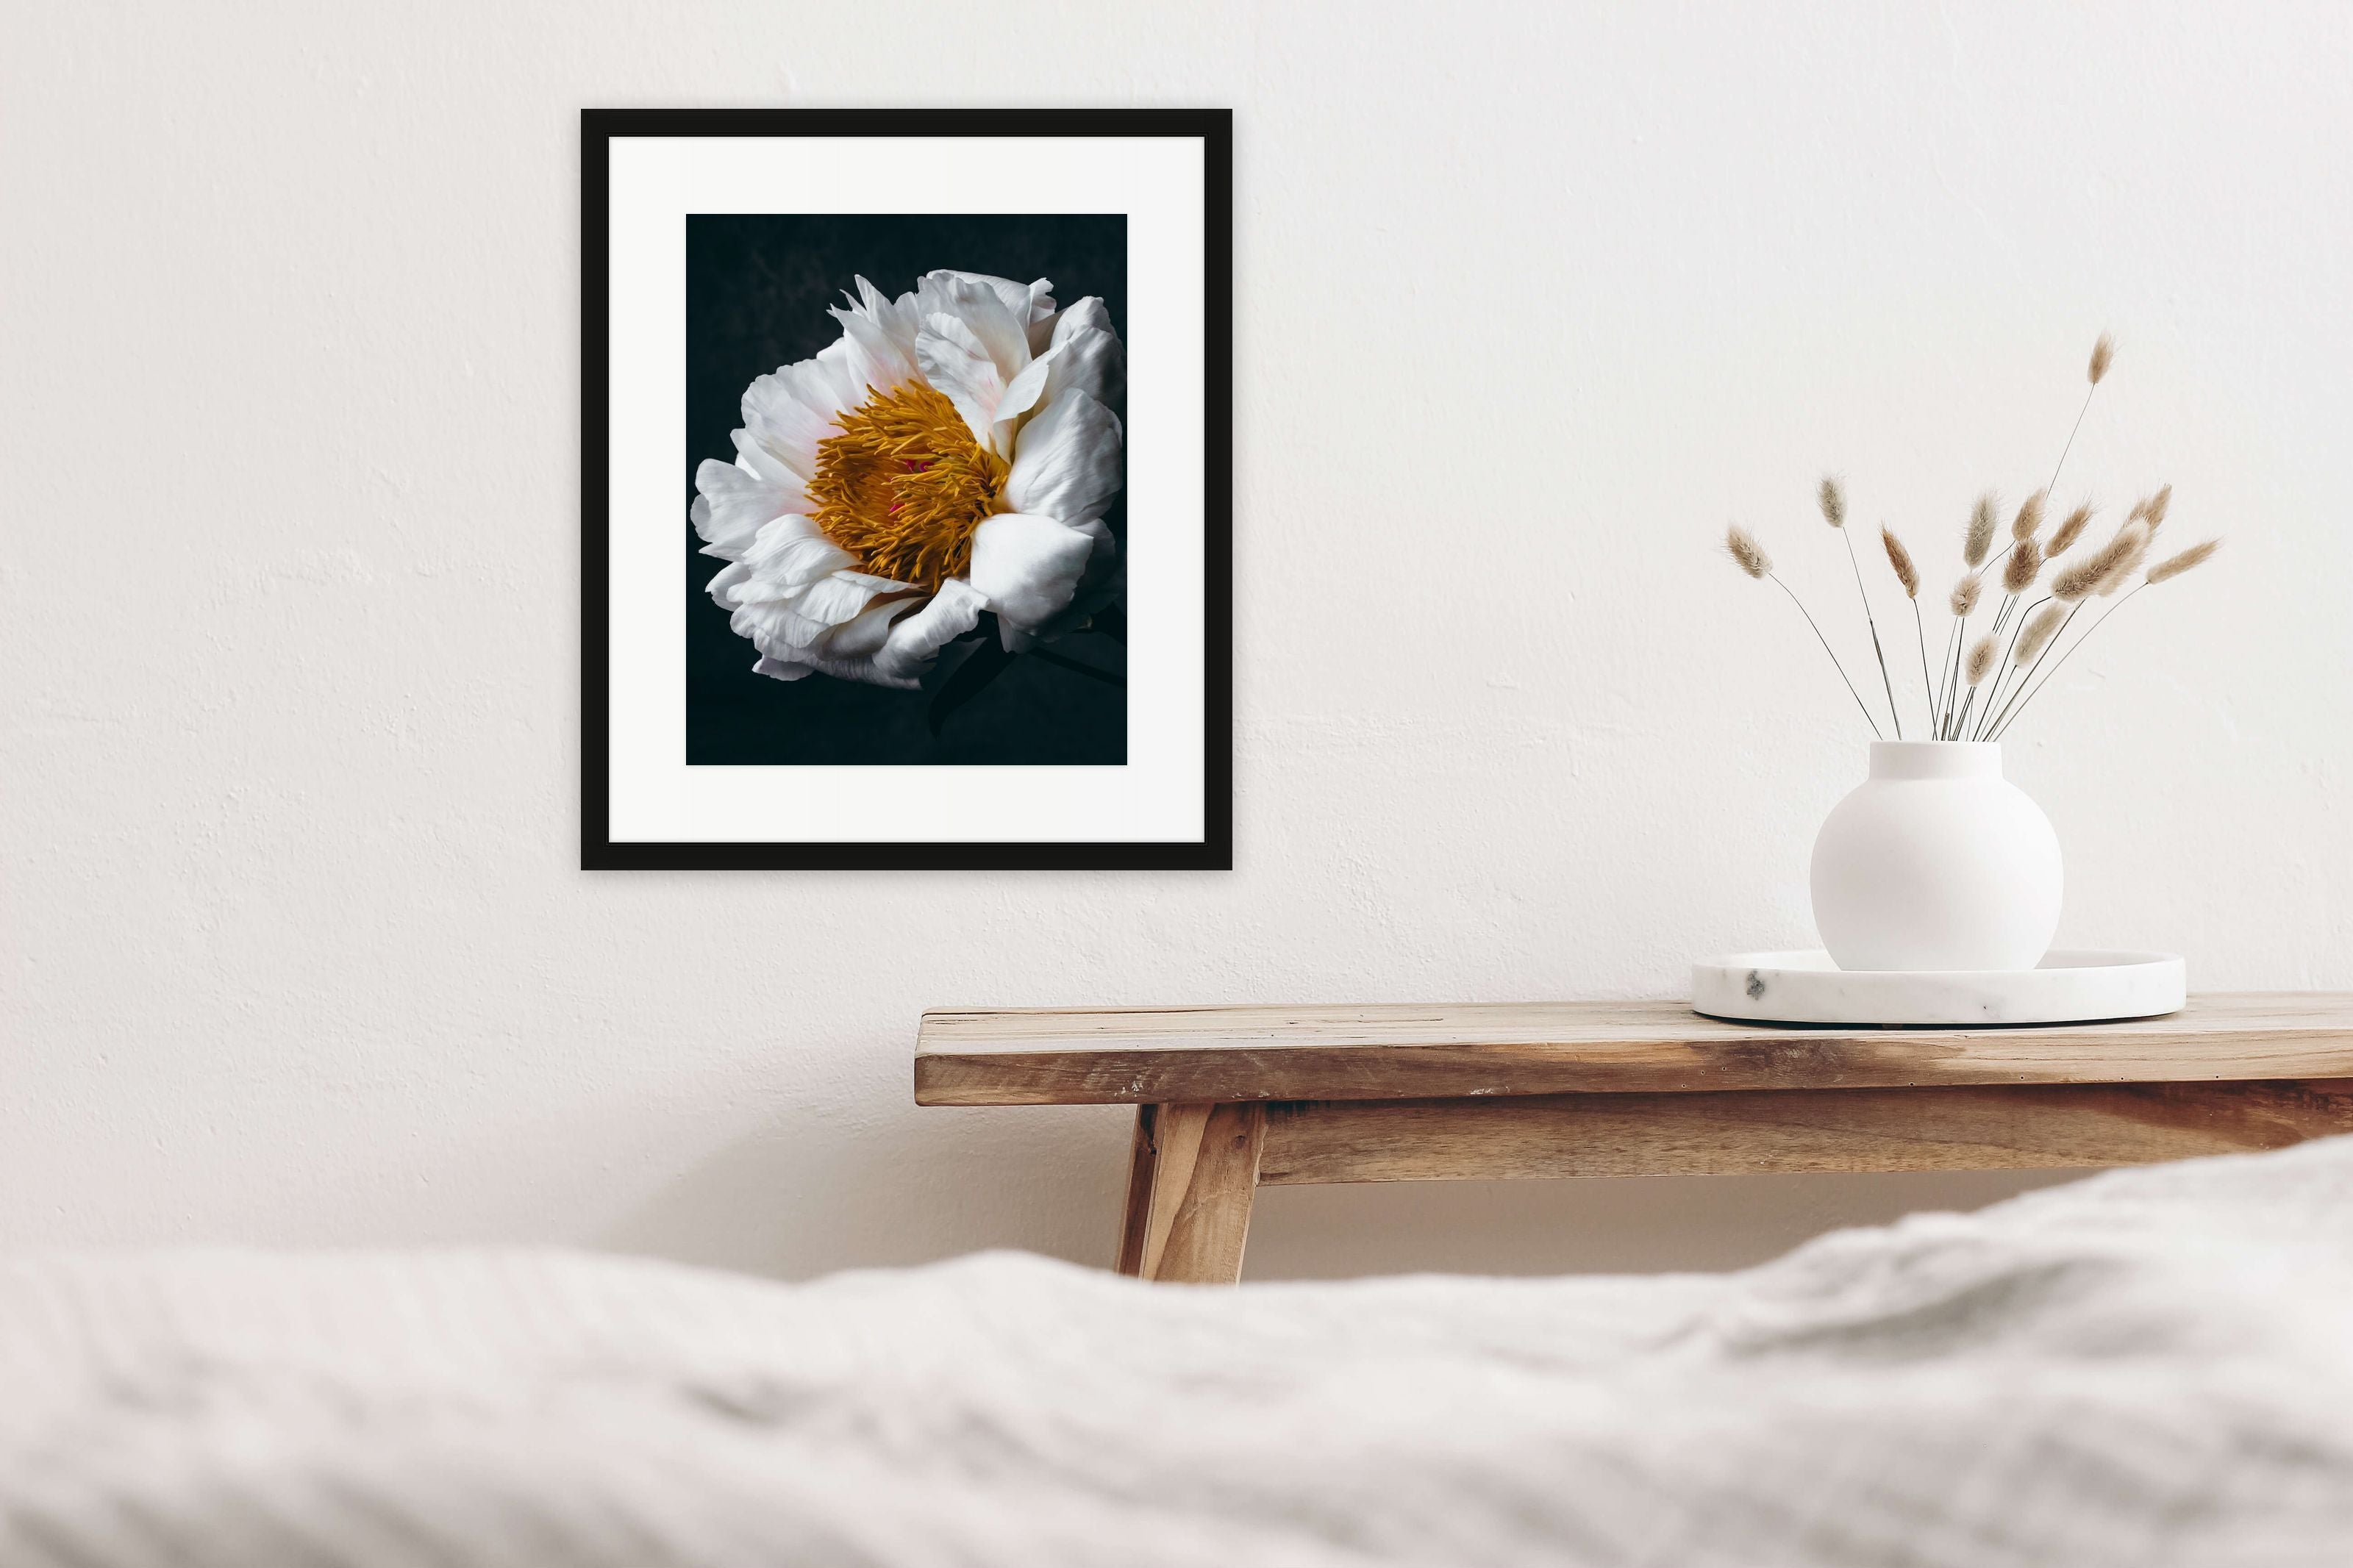 Floral art brings the outdoors inside